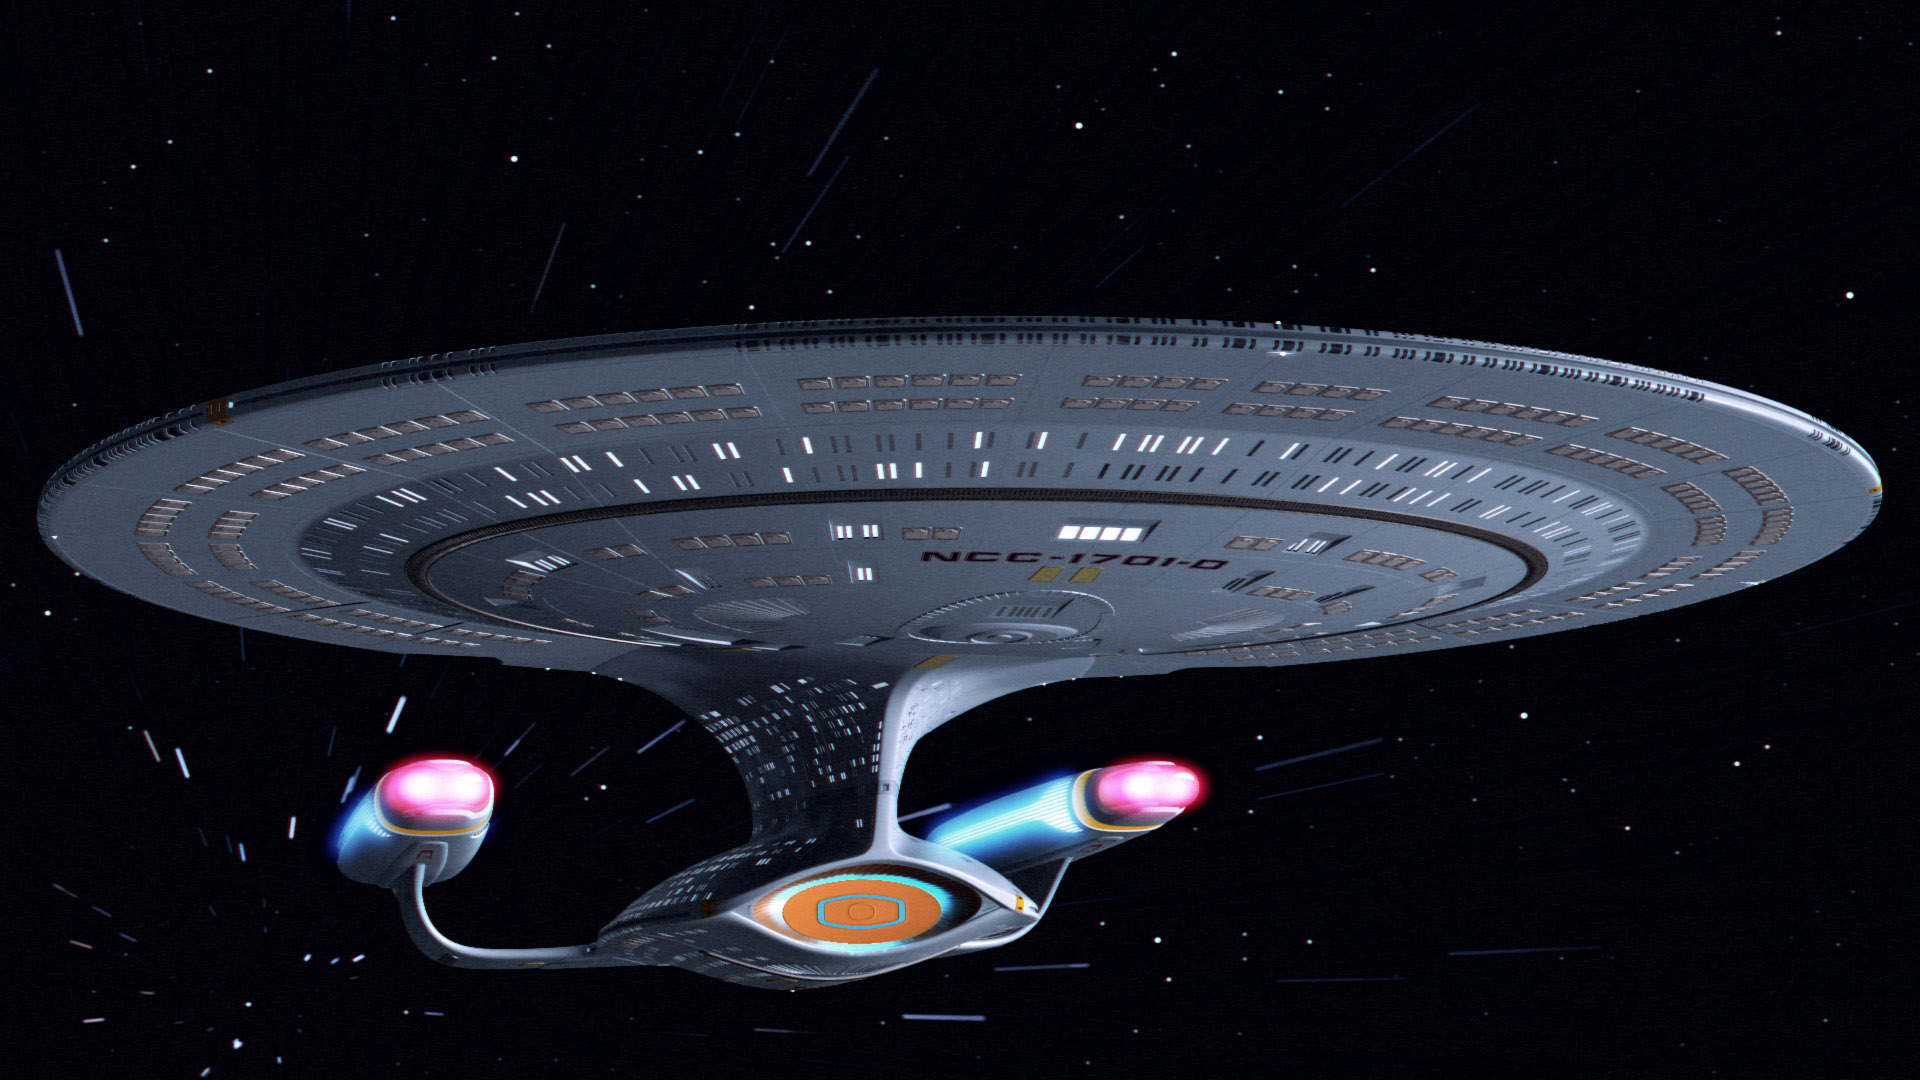 File:U.S.S. Enterprise NCC 1701-D.jpg